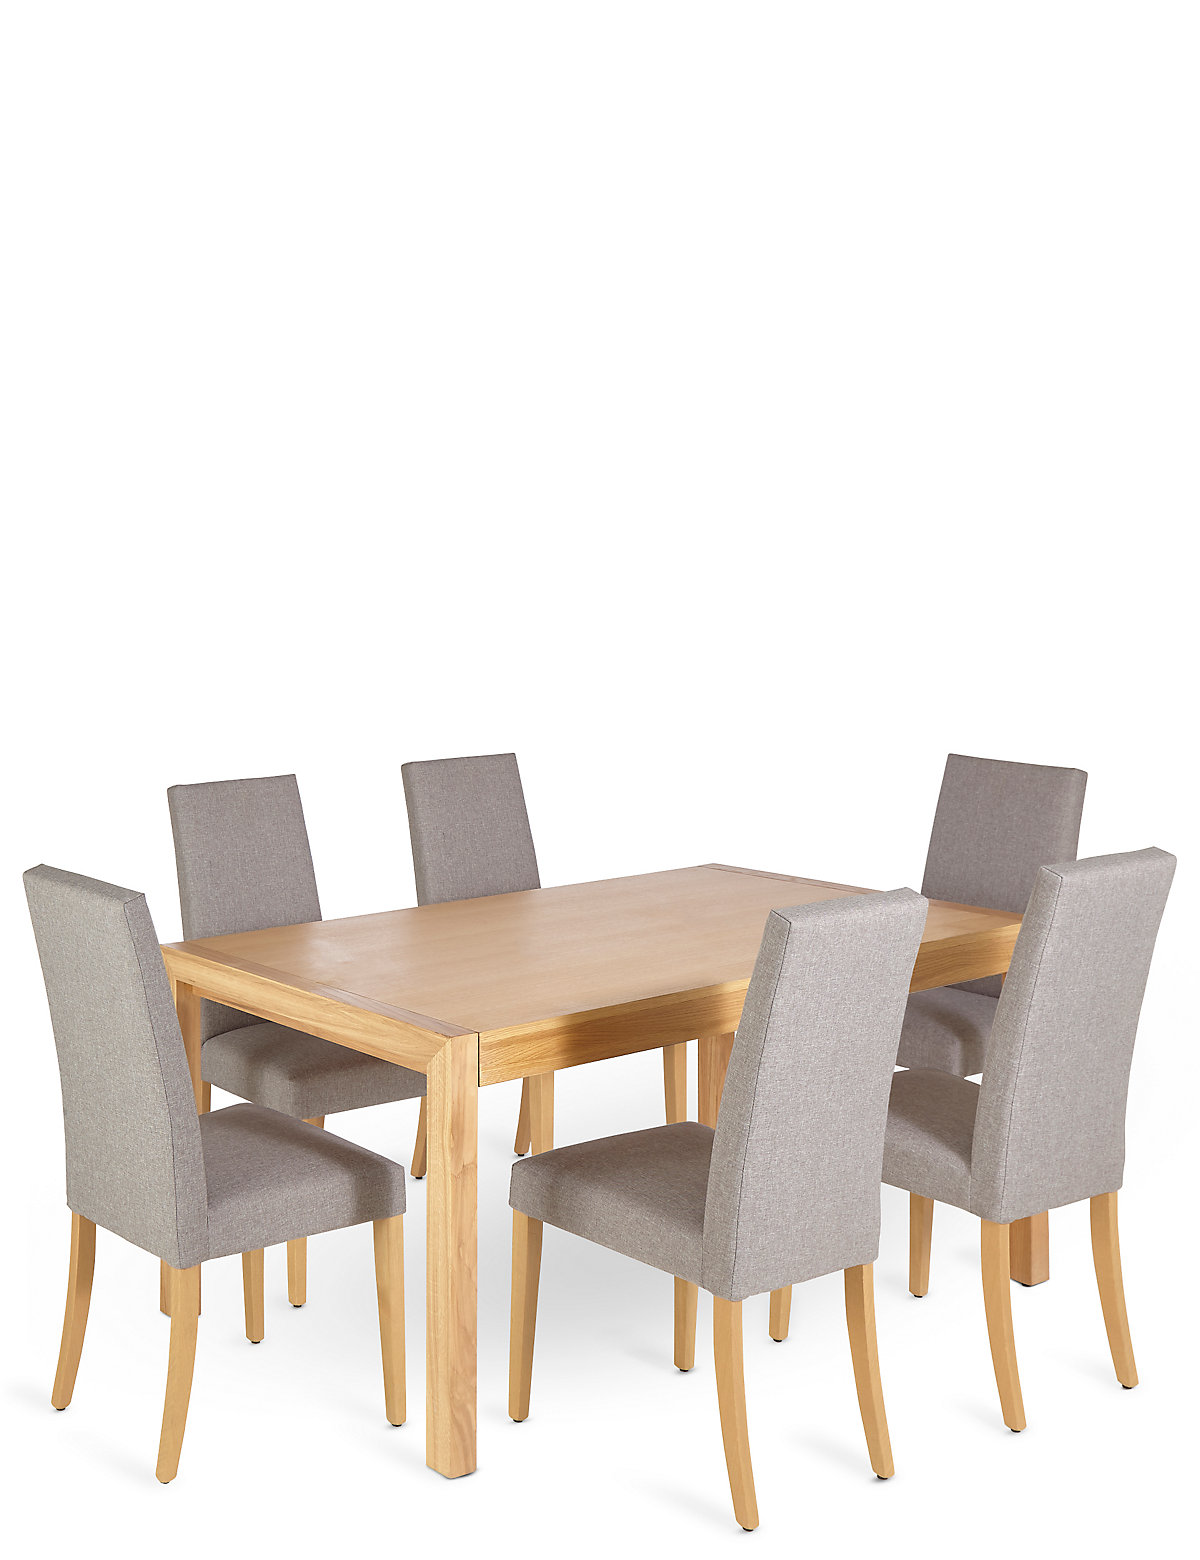 Quick Look · £799 For A Dining Table U0026 6 Chairs Bundle   Save £547